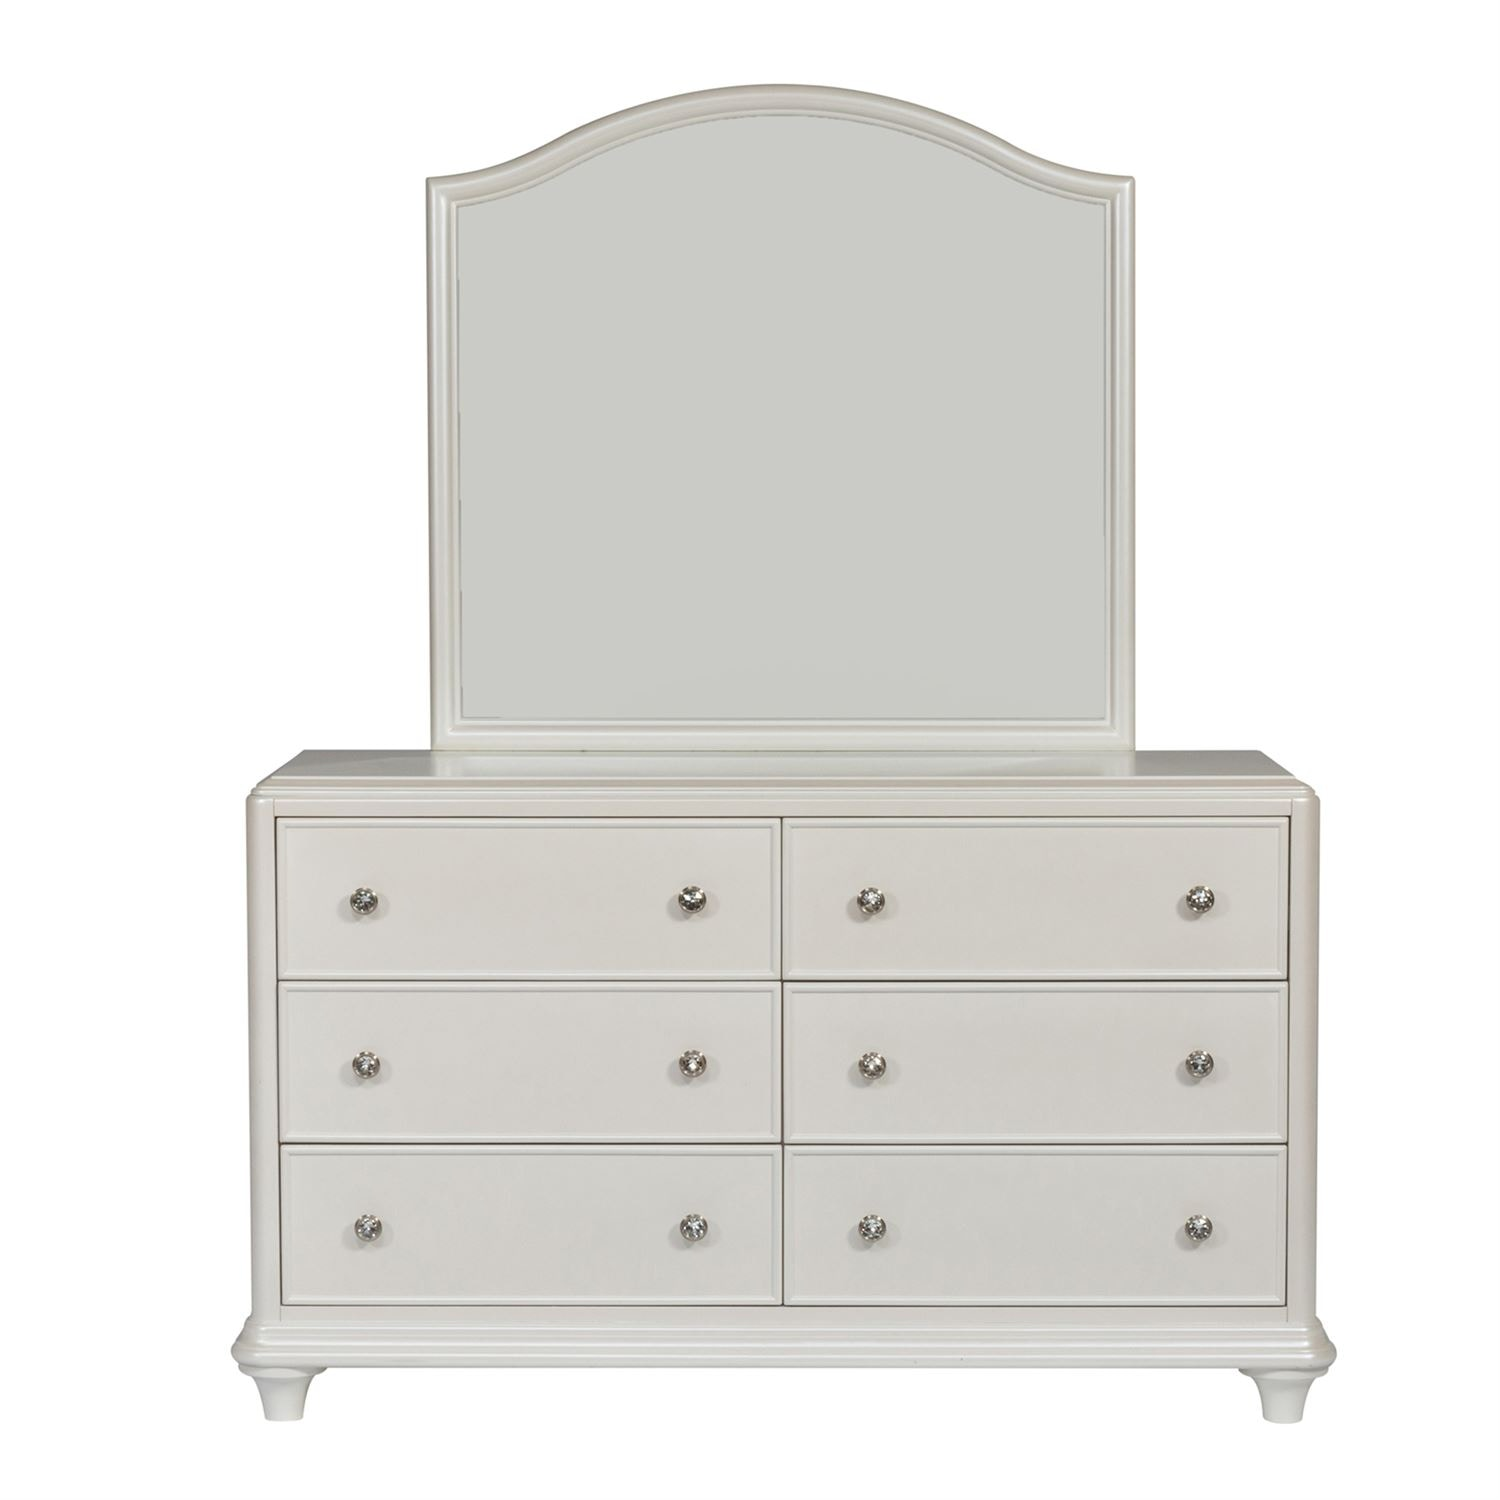 Captivating Liberty Furniture Dresser And Mirror 710 YBR DM